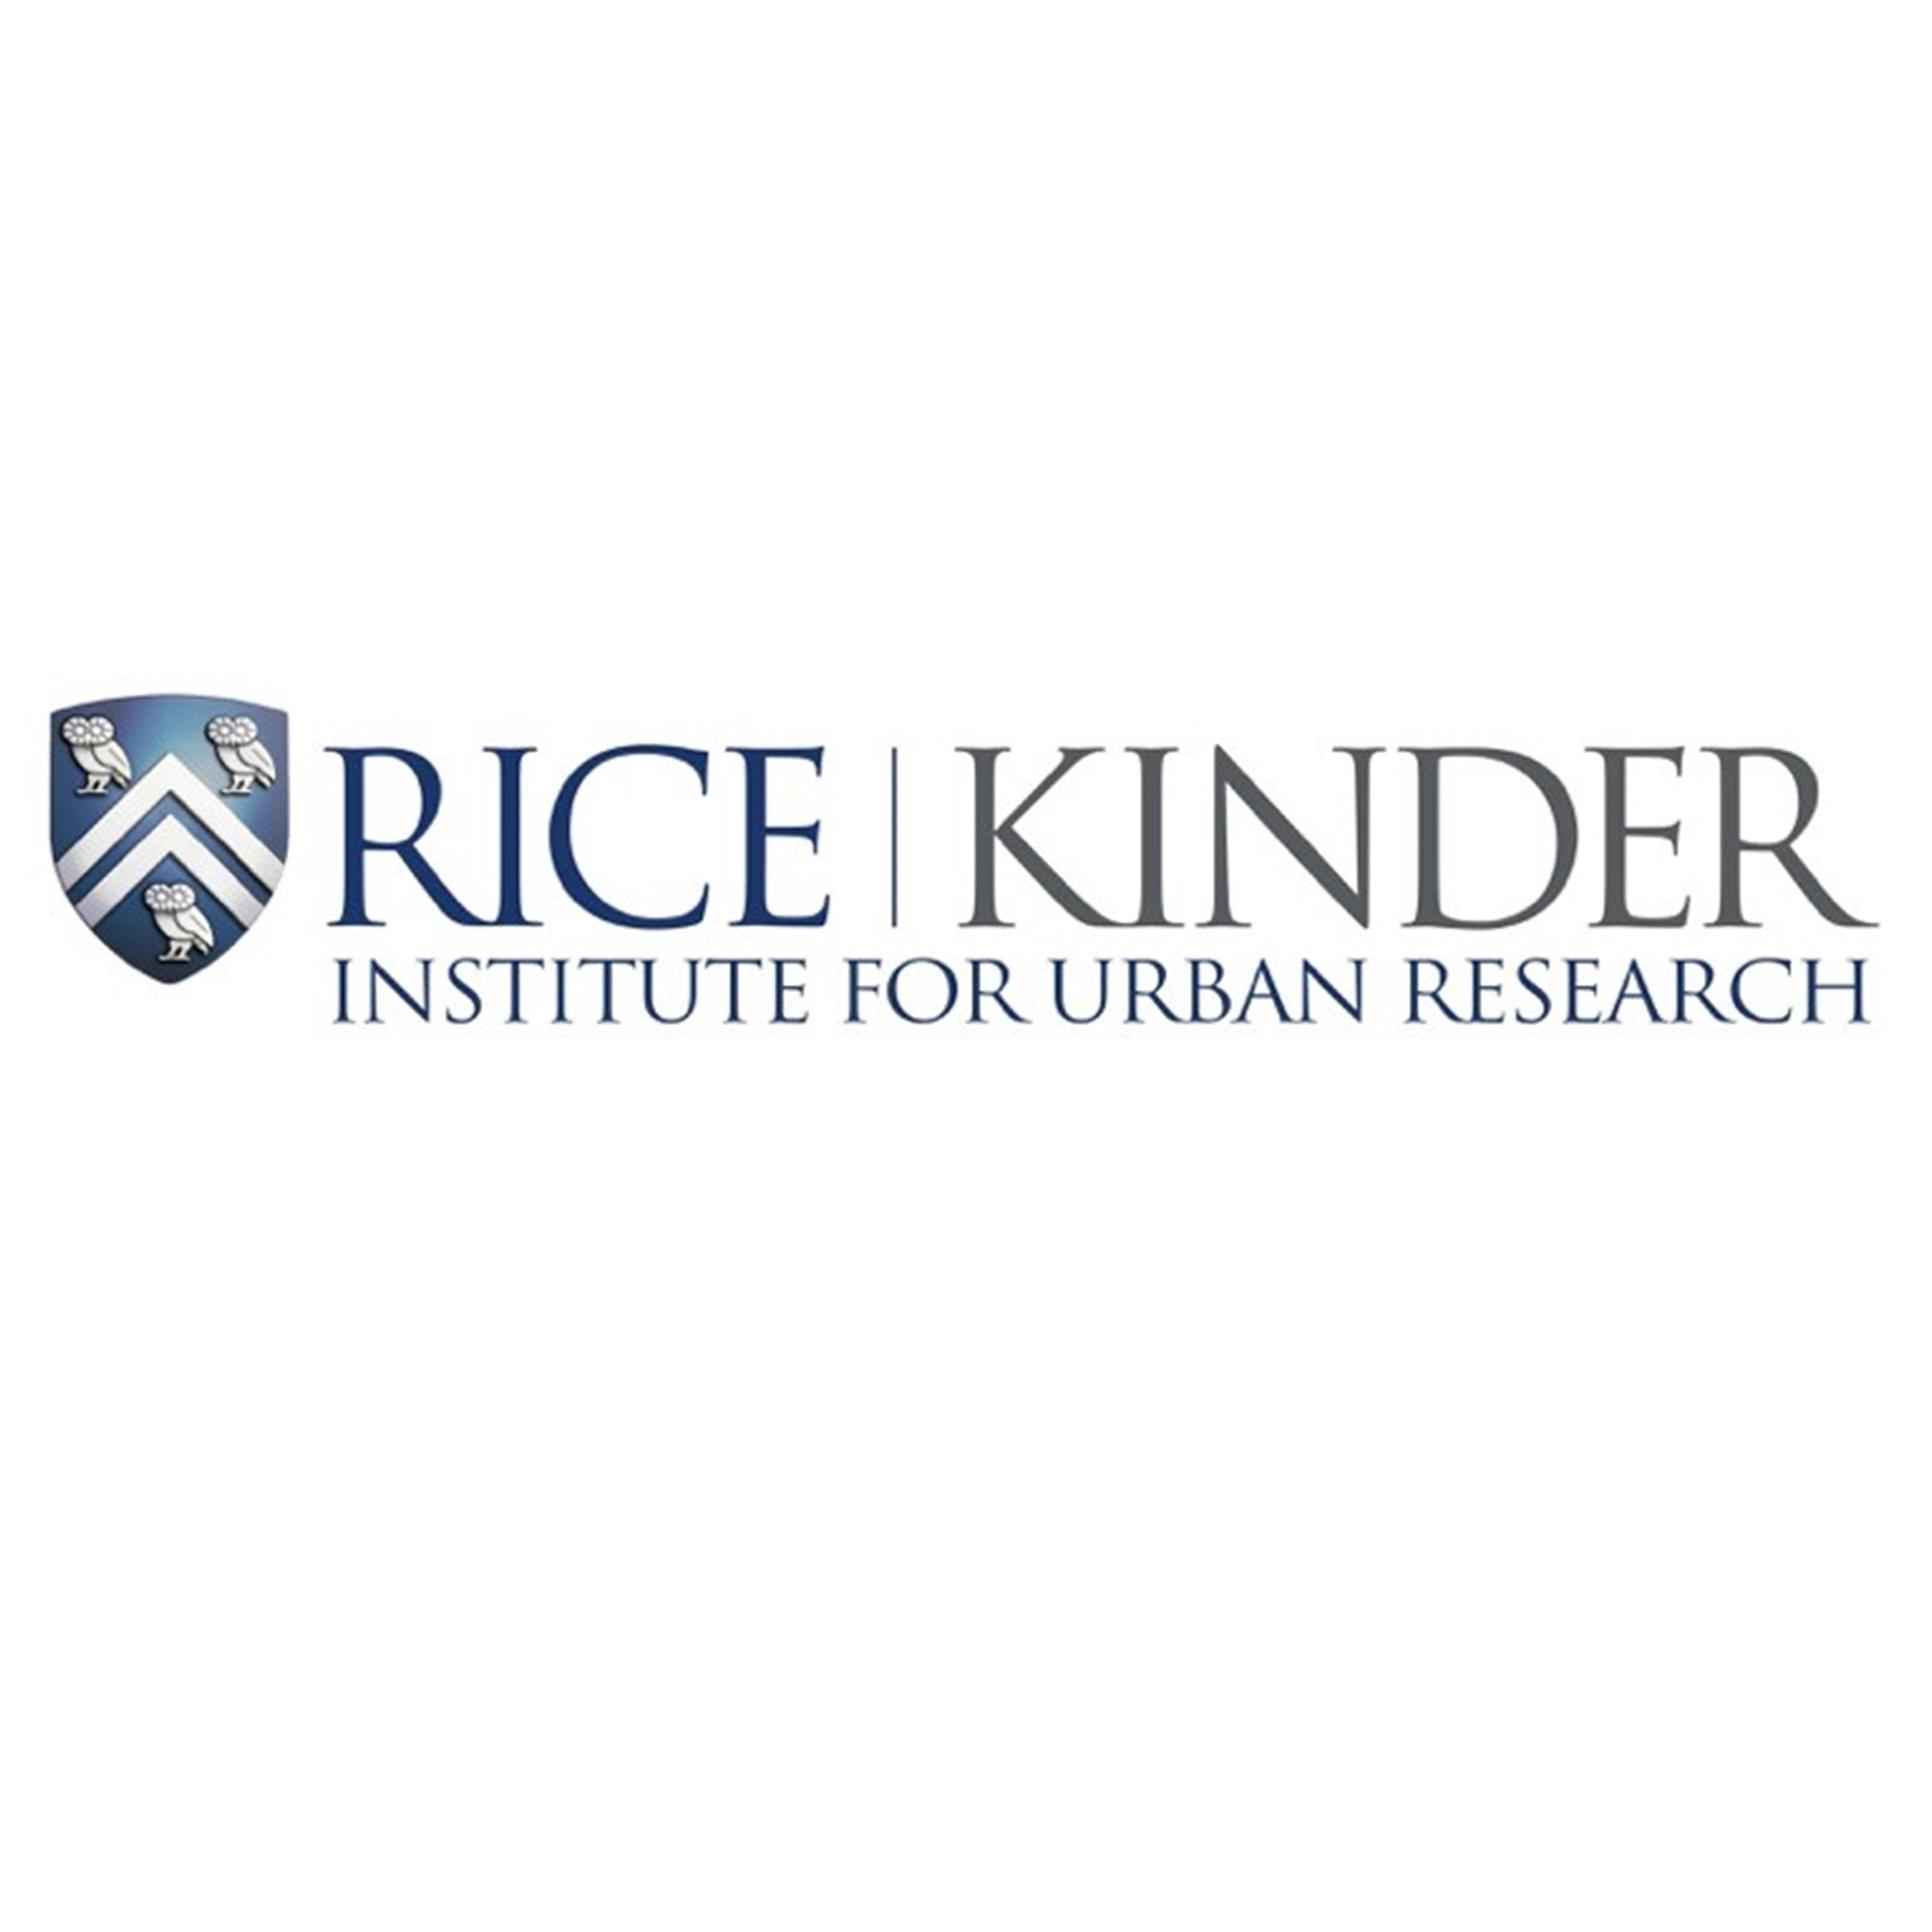 Kinder Institute logo